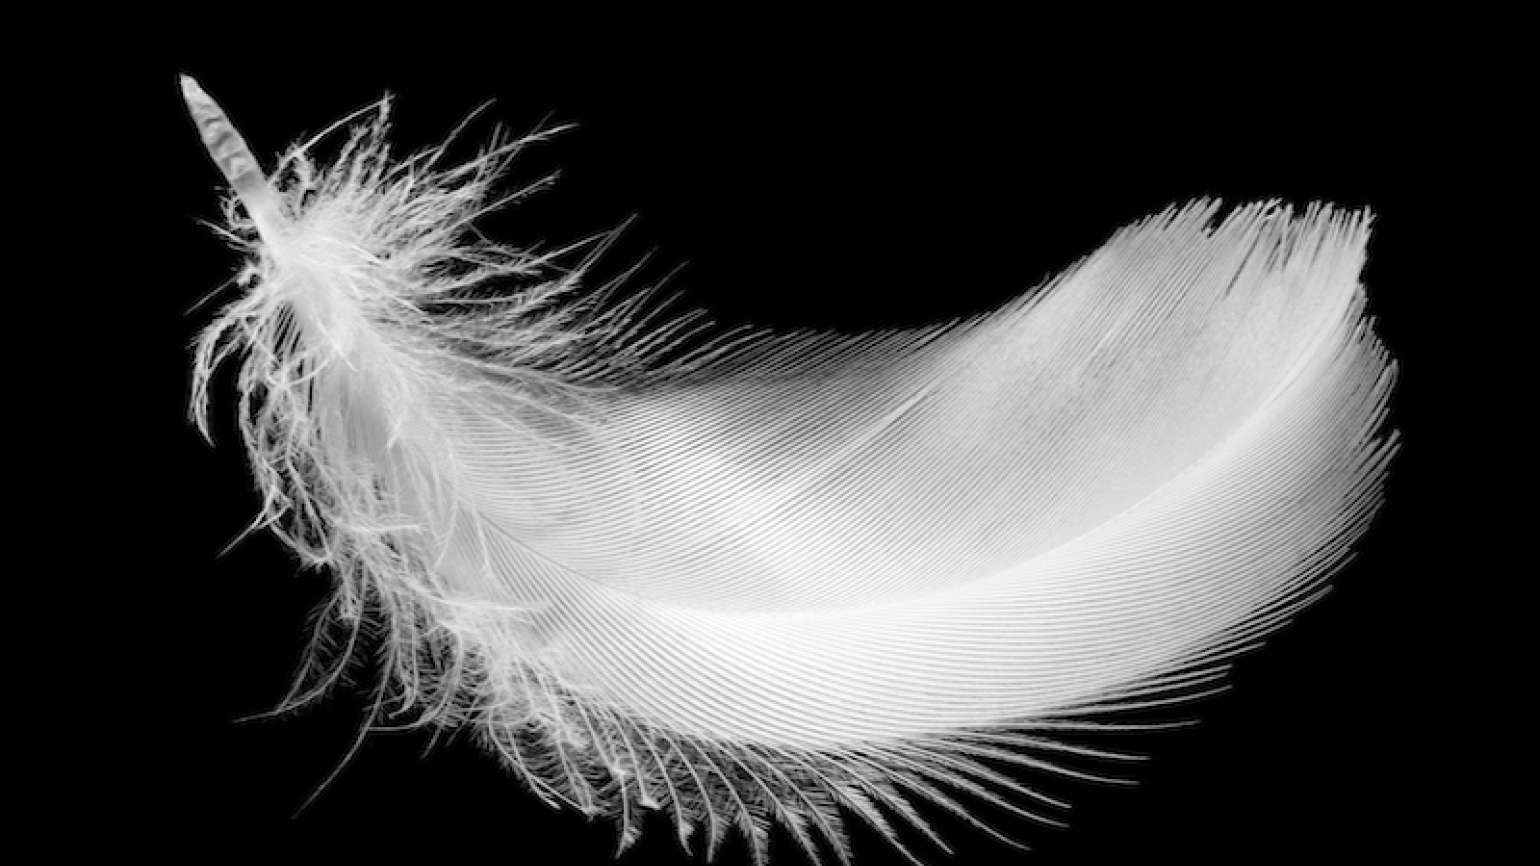 Photo of white feather by Jurisam for Thinkstock, Getty Images